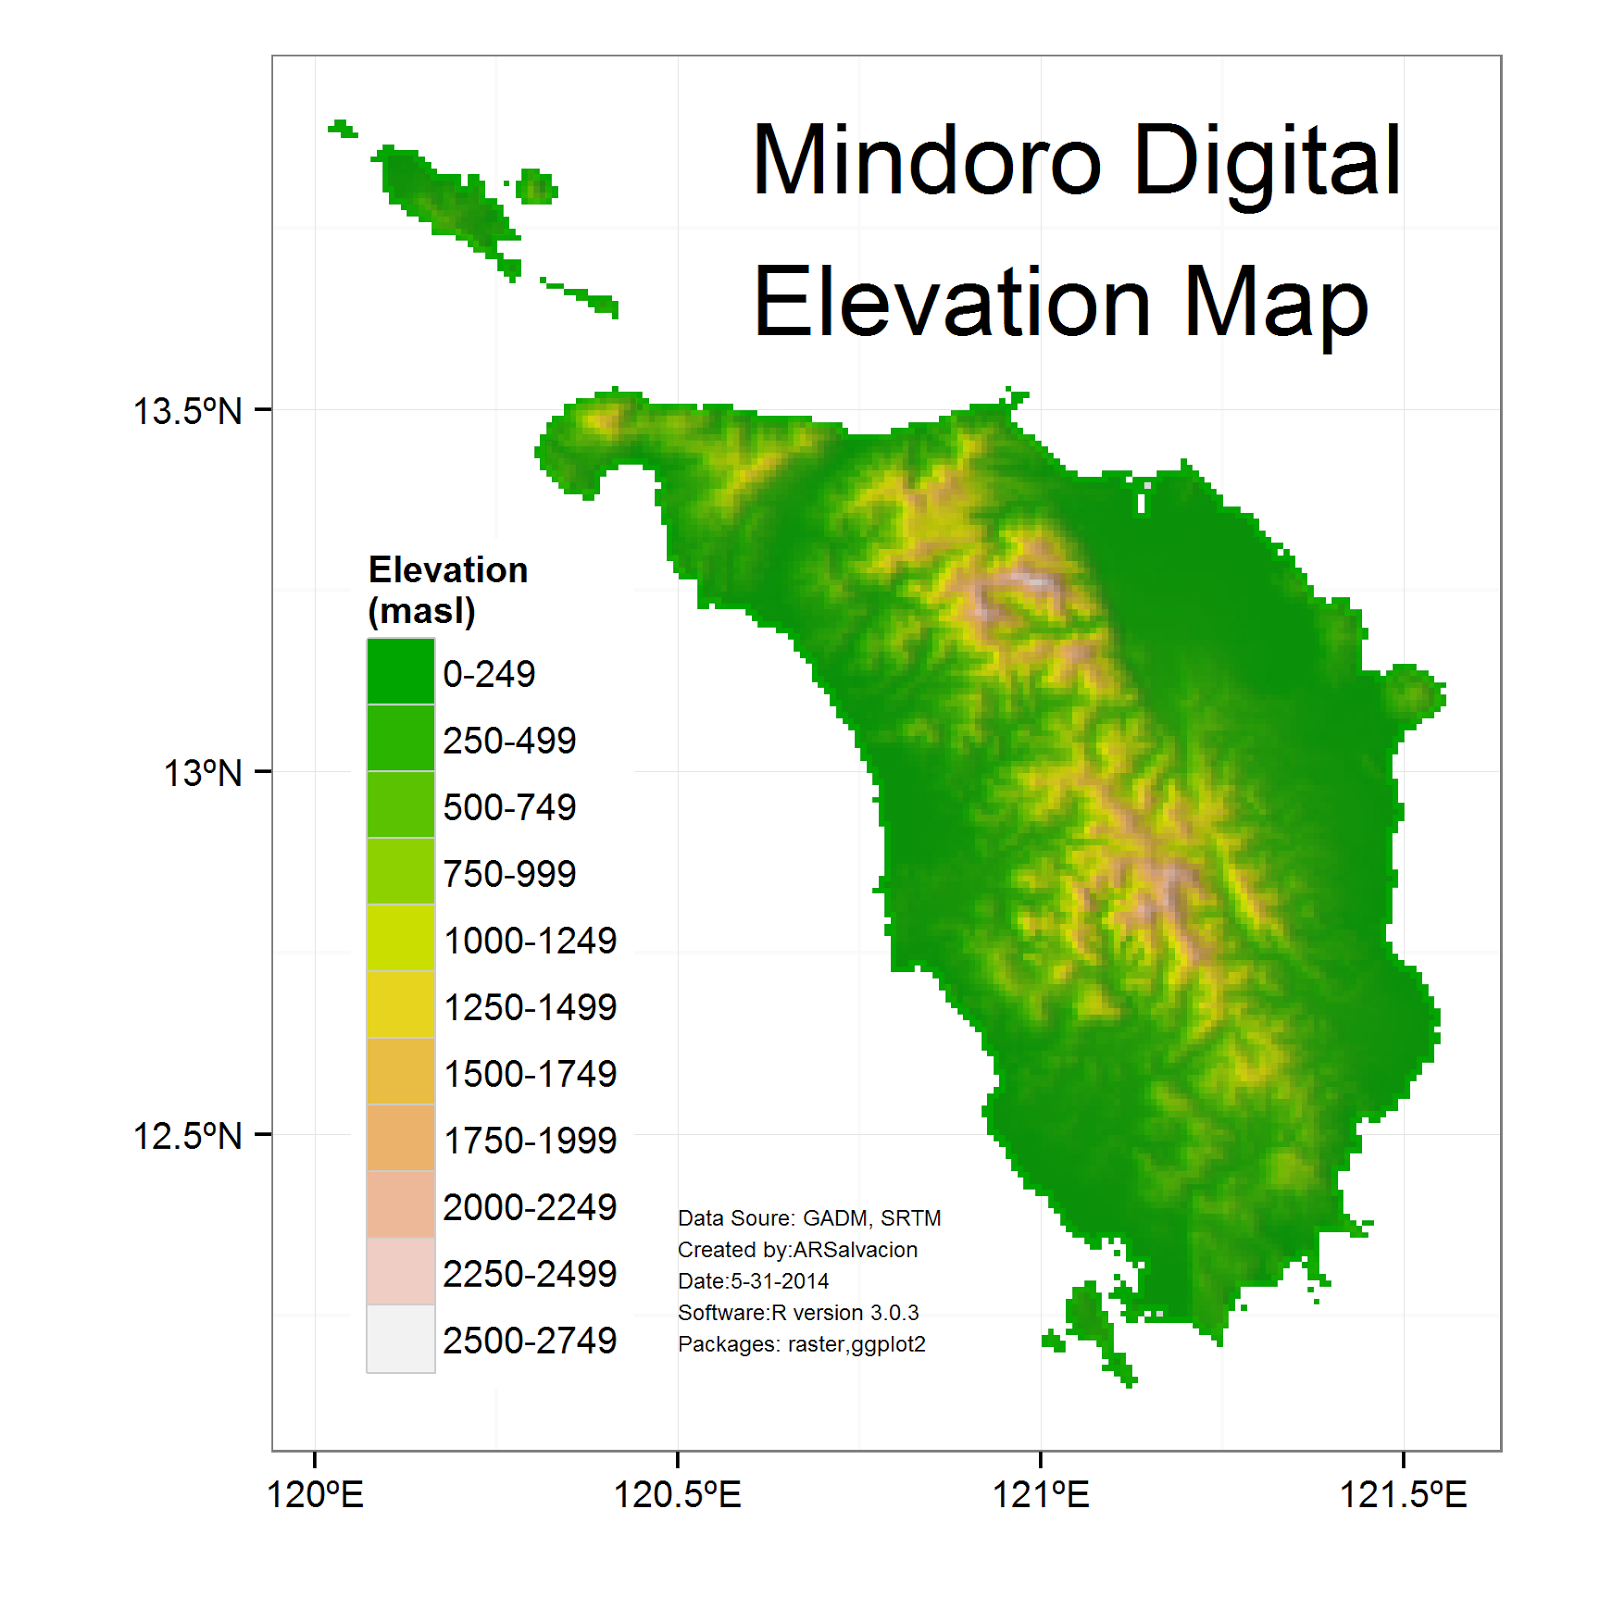 Mindoro Digital Elevation Map Updated